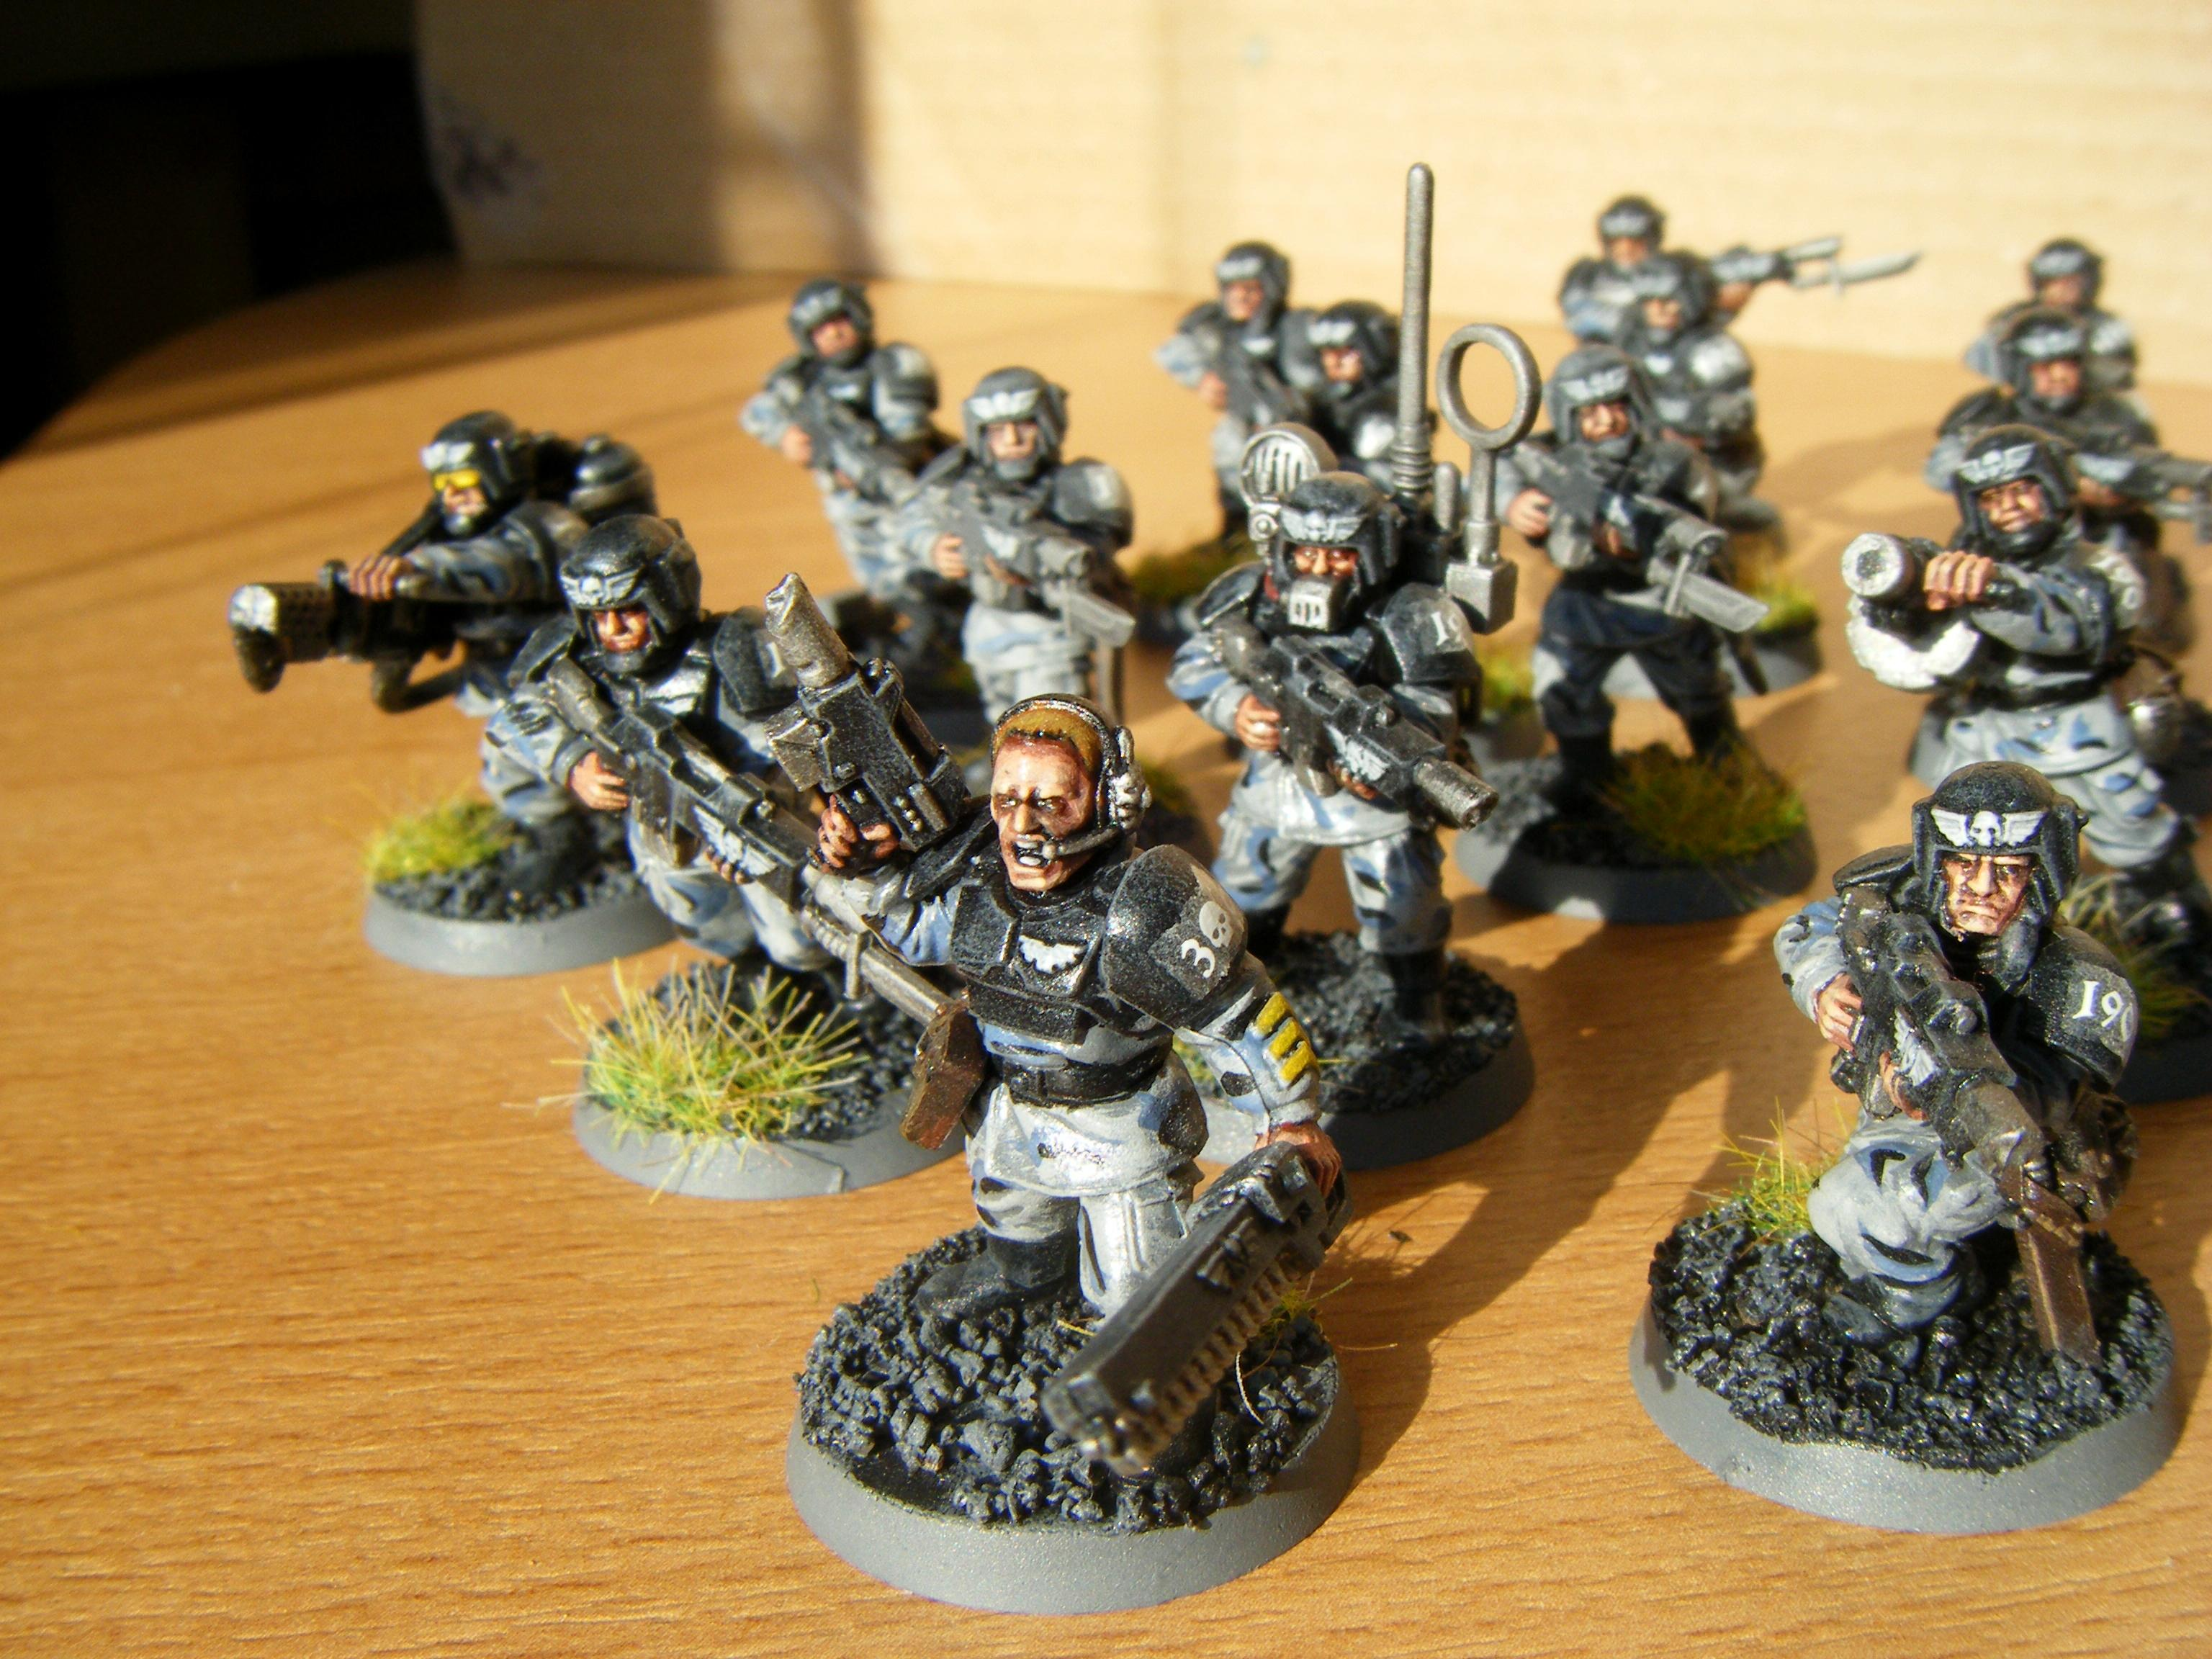 190th Imperial Guard Infantry